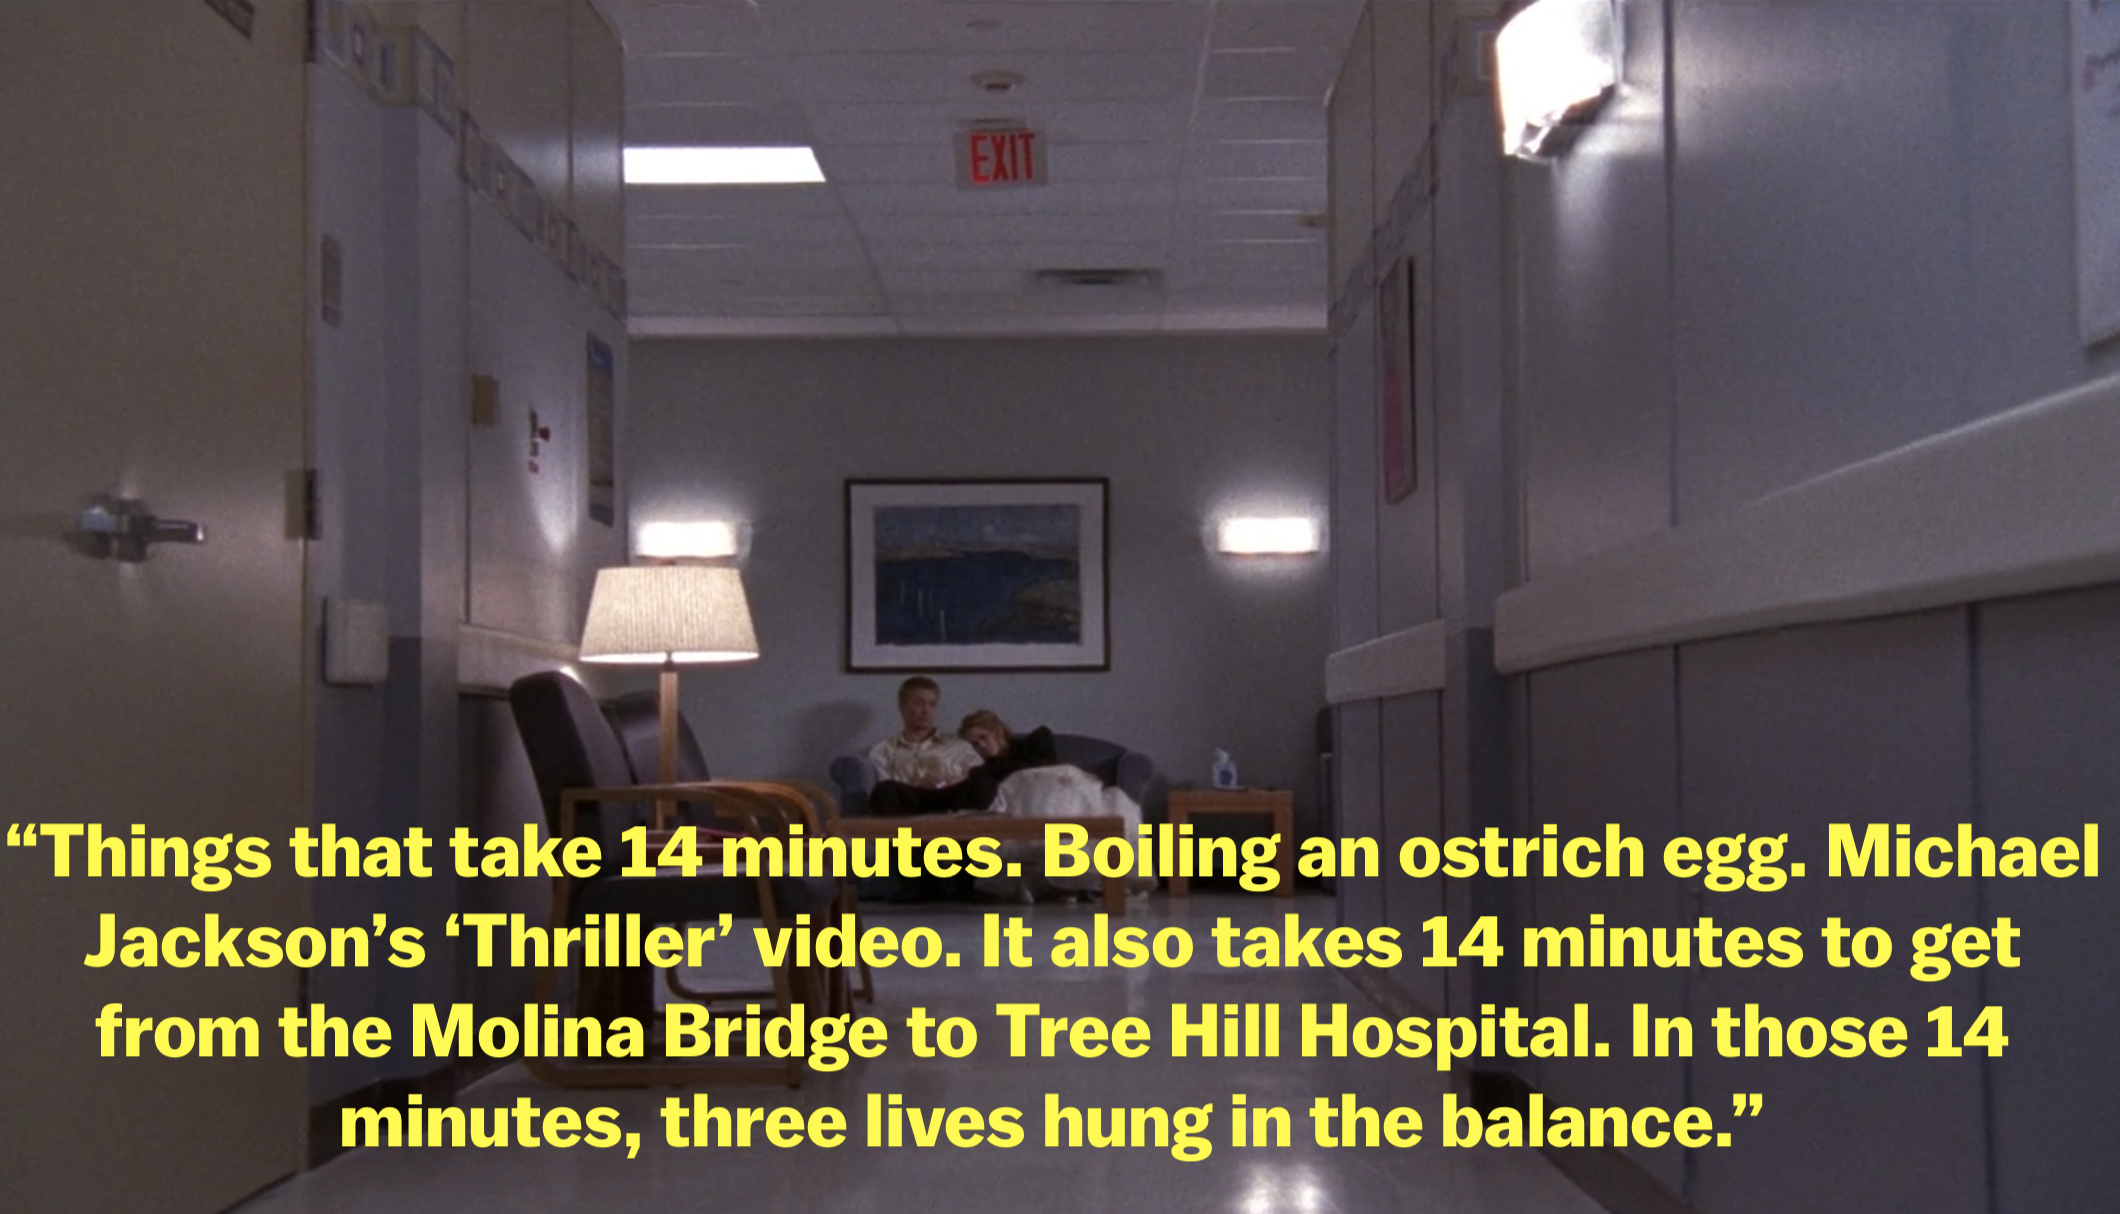 "Lucas saying ""Things that take 14 minutes. Boiling an ostrich egg. Michael Jackson's 'Thriller' video. It also takes 14 minutes to get from the Molina Bridge to Tree Hill Hospital. In these 14 minutes, three lives hung in the balance"""